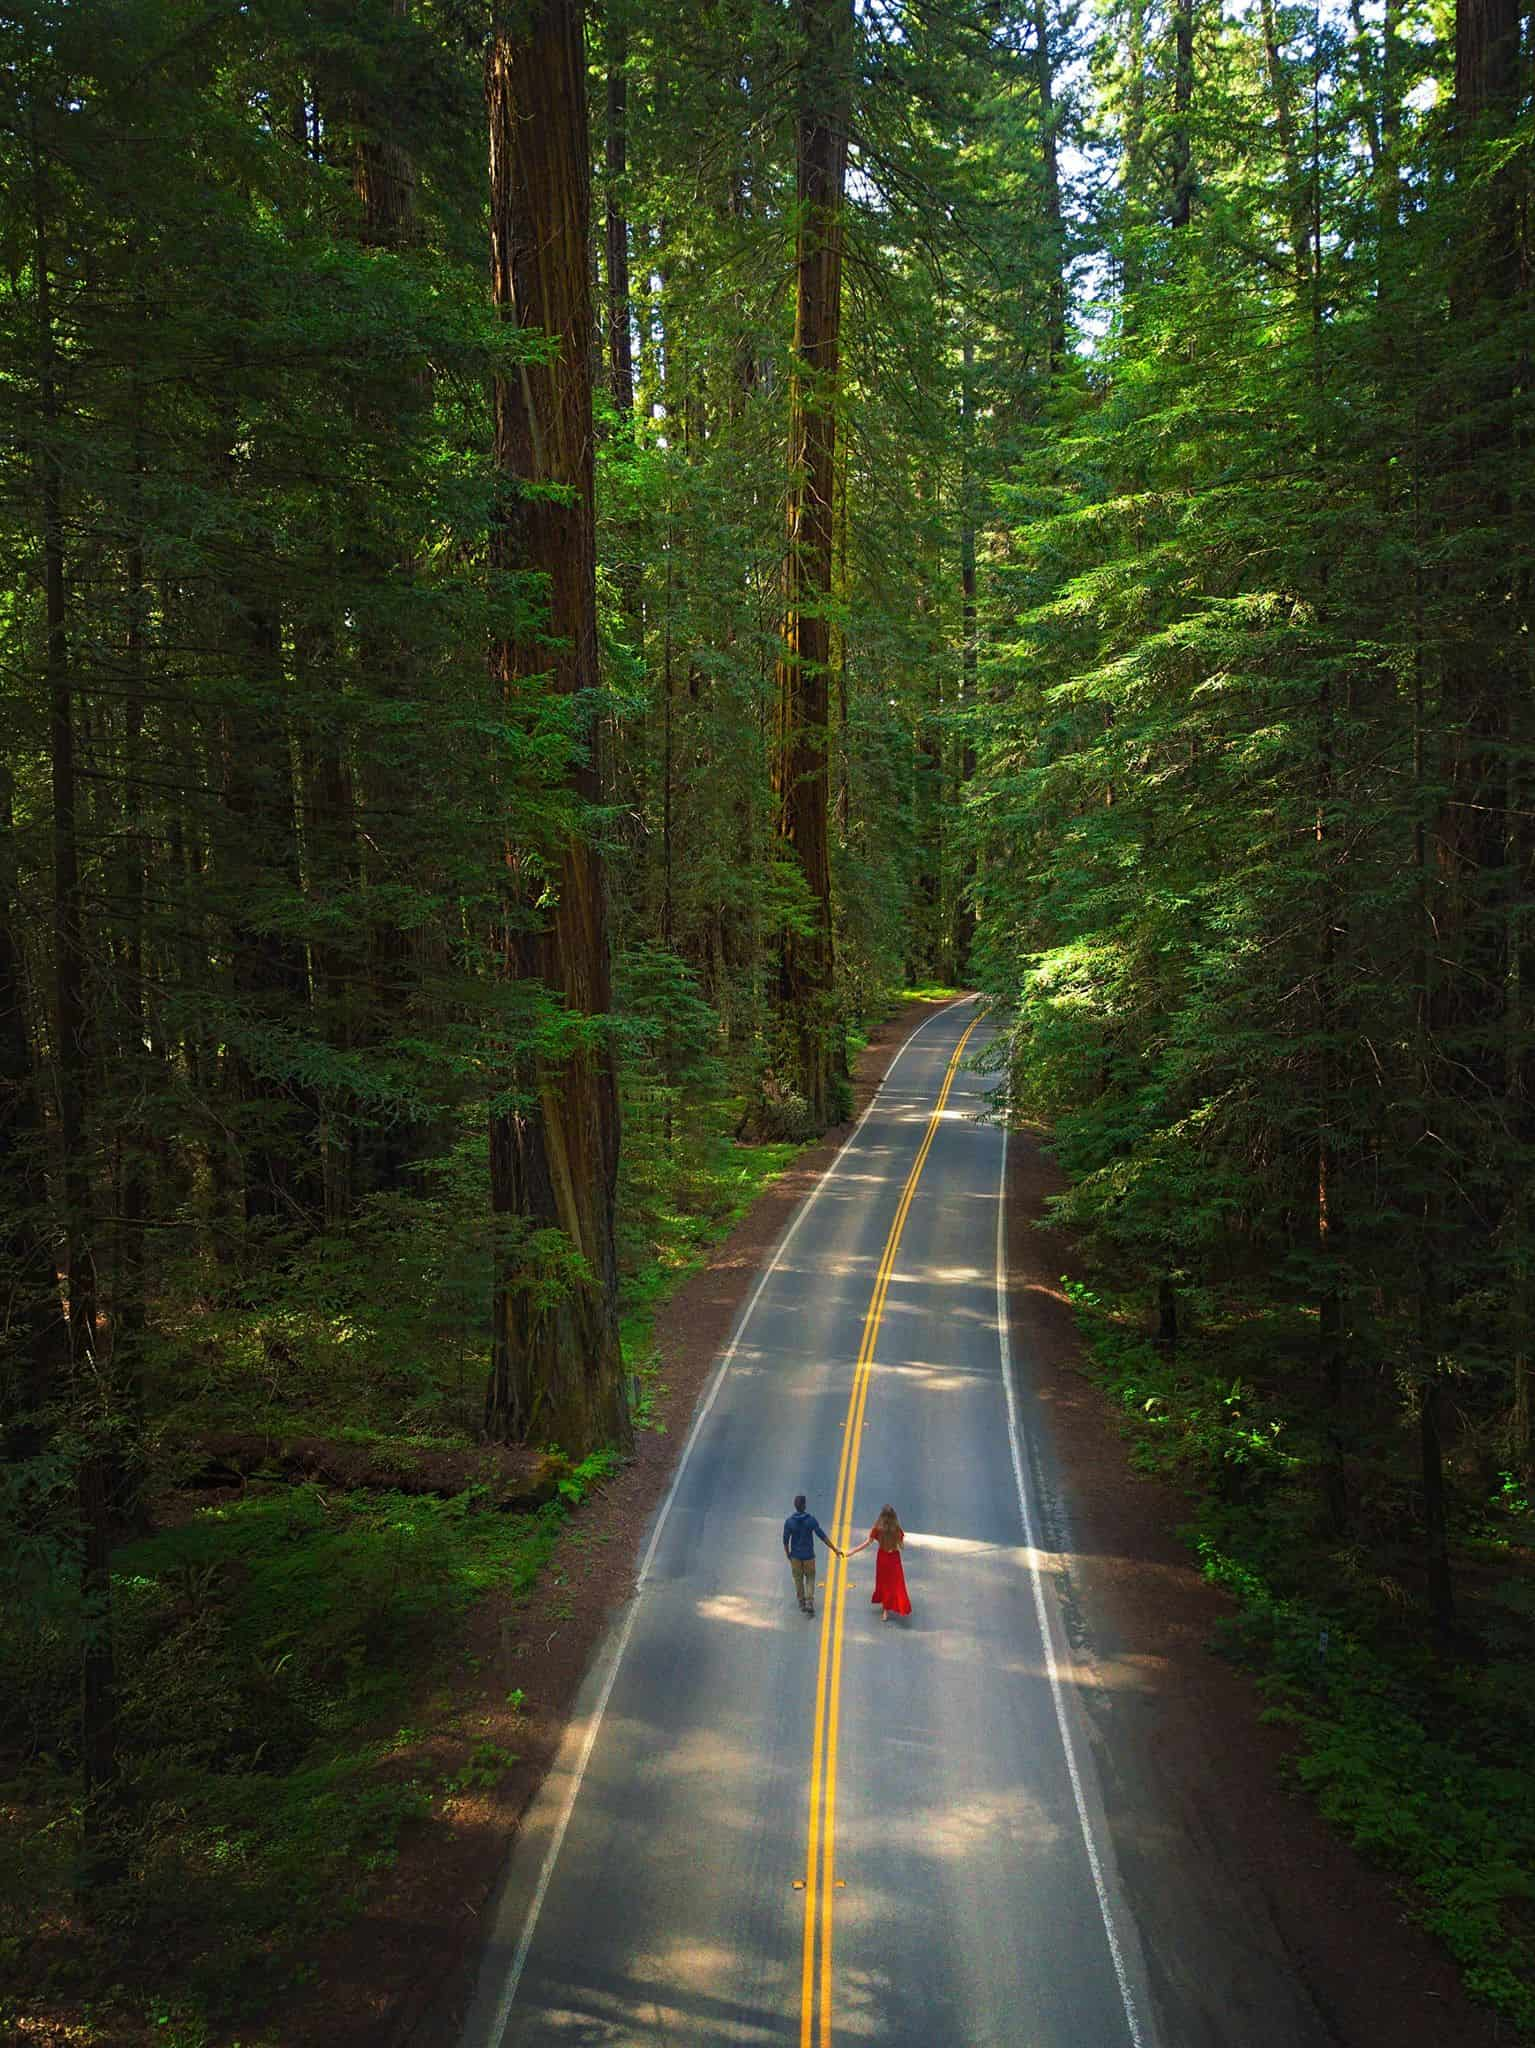 A couple standing in the middle of the road in the Avenue of Giants area of Northern California. The woman is wearing a long red dress and the man is wearing a blue shirt and khaki pants. The road goes out of frame and is surrounded by massive trees on both sides. The view is an aerial view.